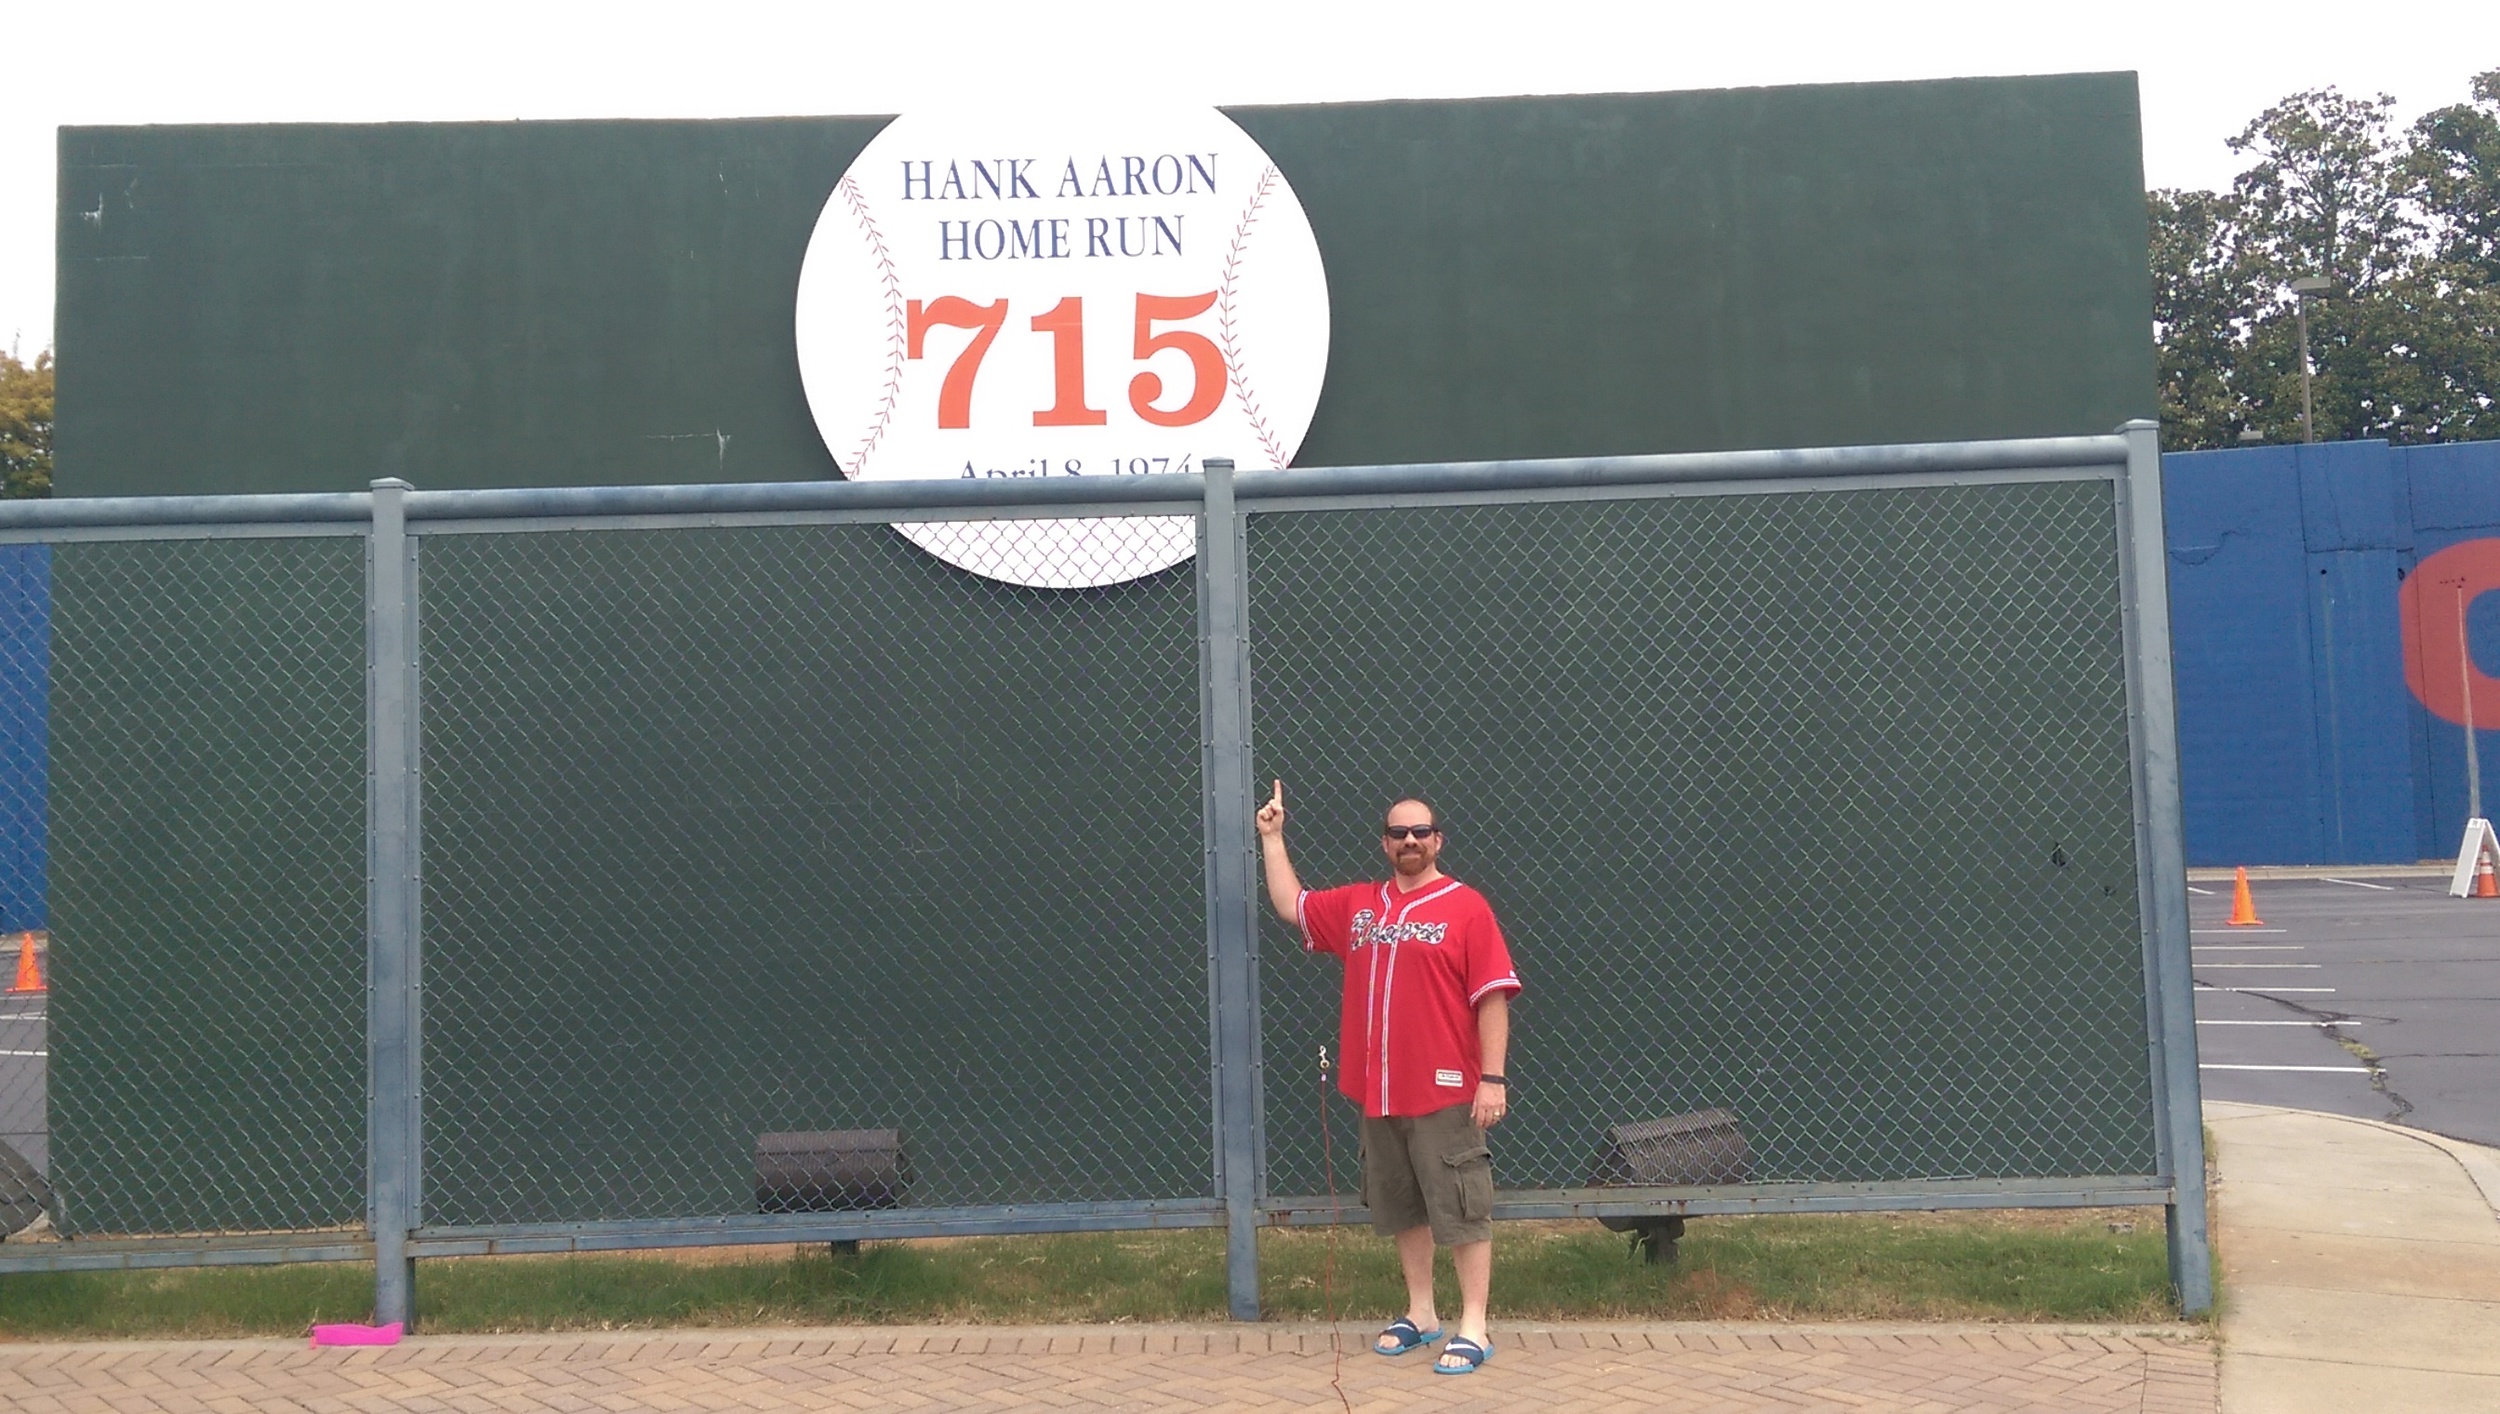 The fence and the wall when the true home run king, Hank Aaron, broke Babe Ruth's record.